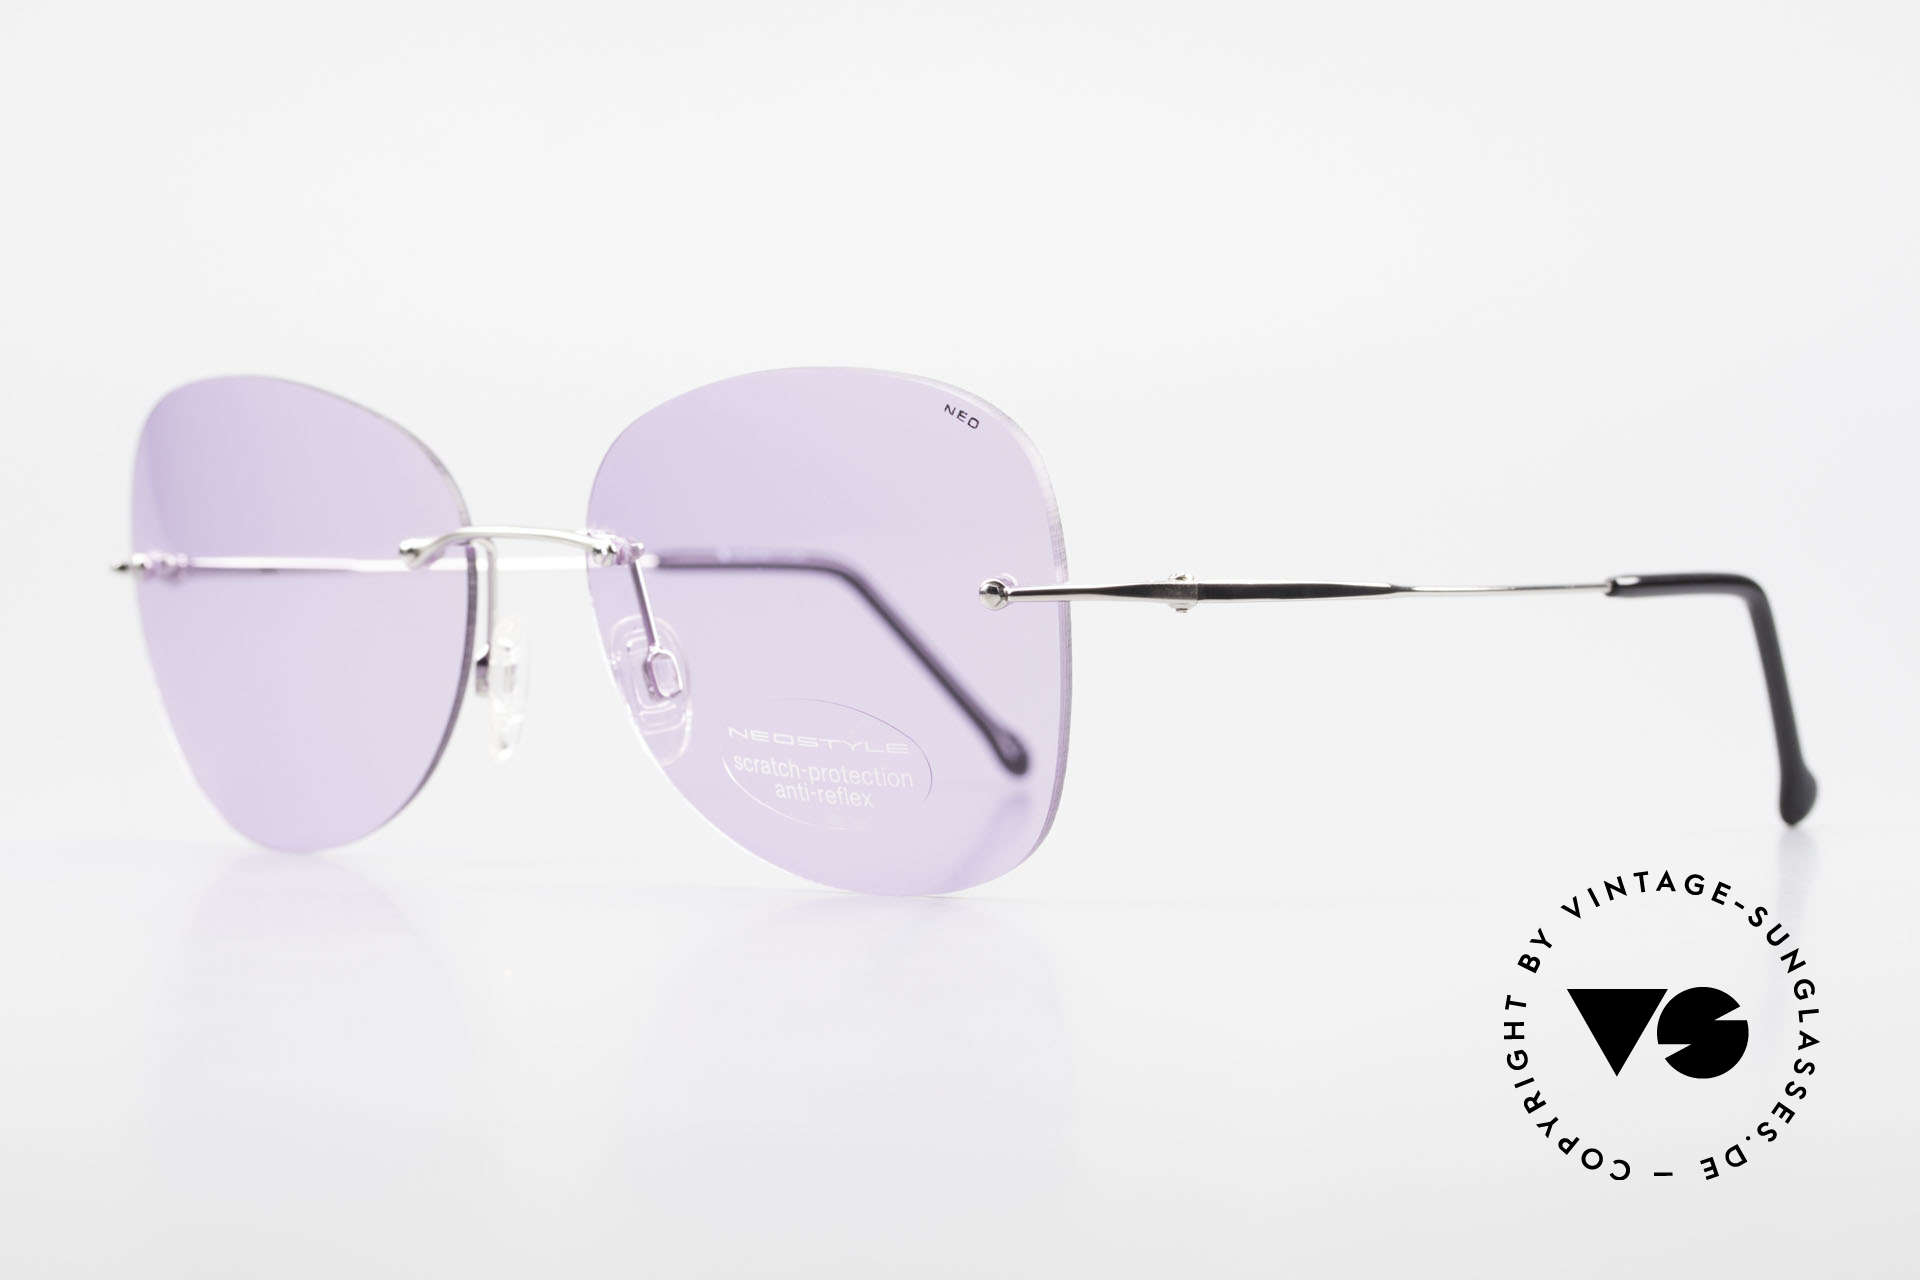 Neostyle Holiday 2051 Rimless XXL Sunglasses Ladies, oversized shades = enchanting fashion accessory, Made for Women